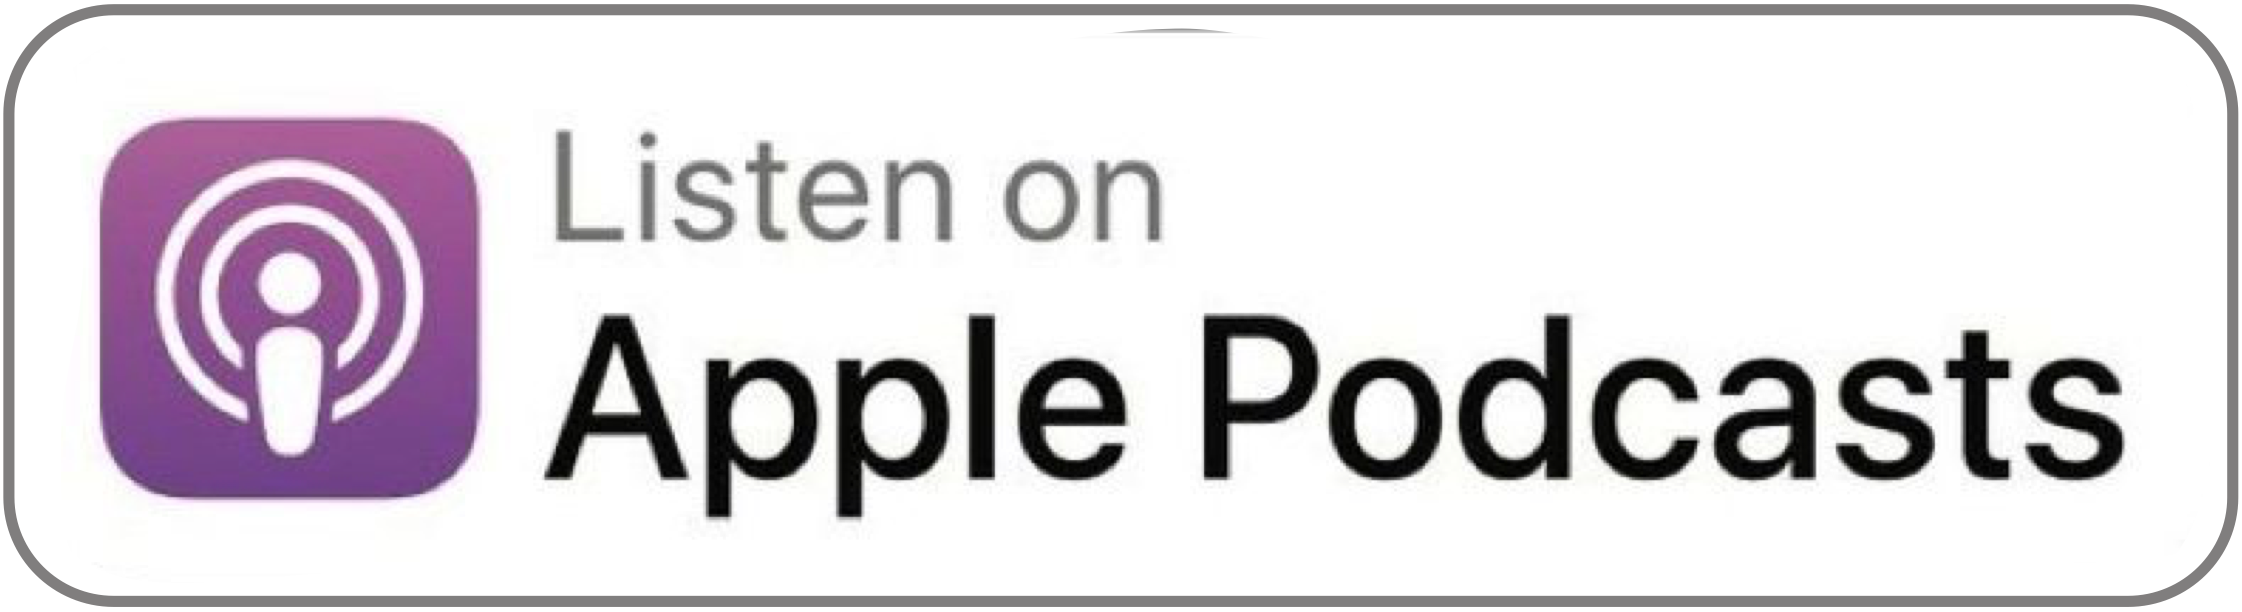 ApplePodcastLogo - Apple Podcast PNG